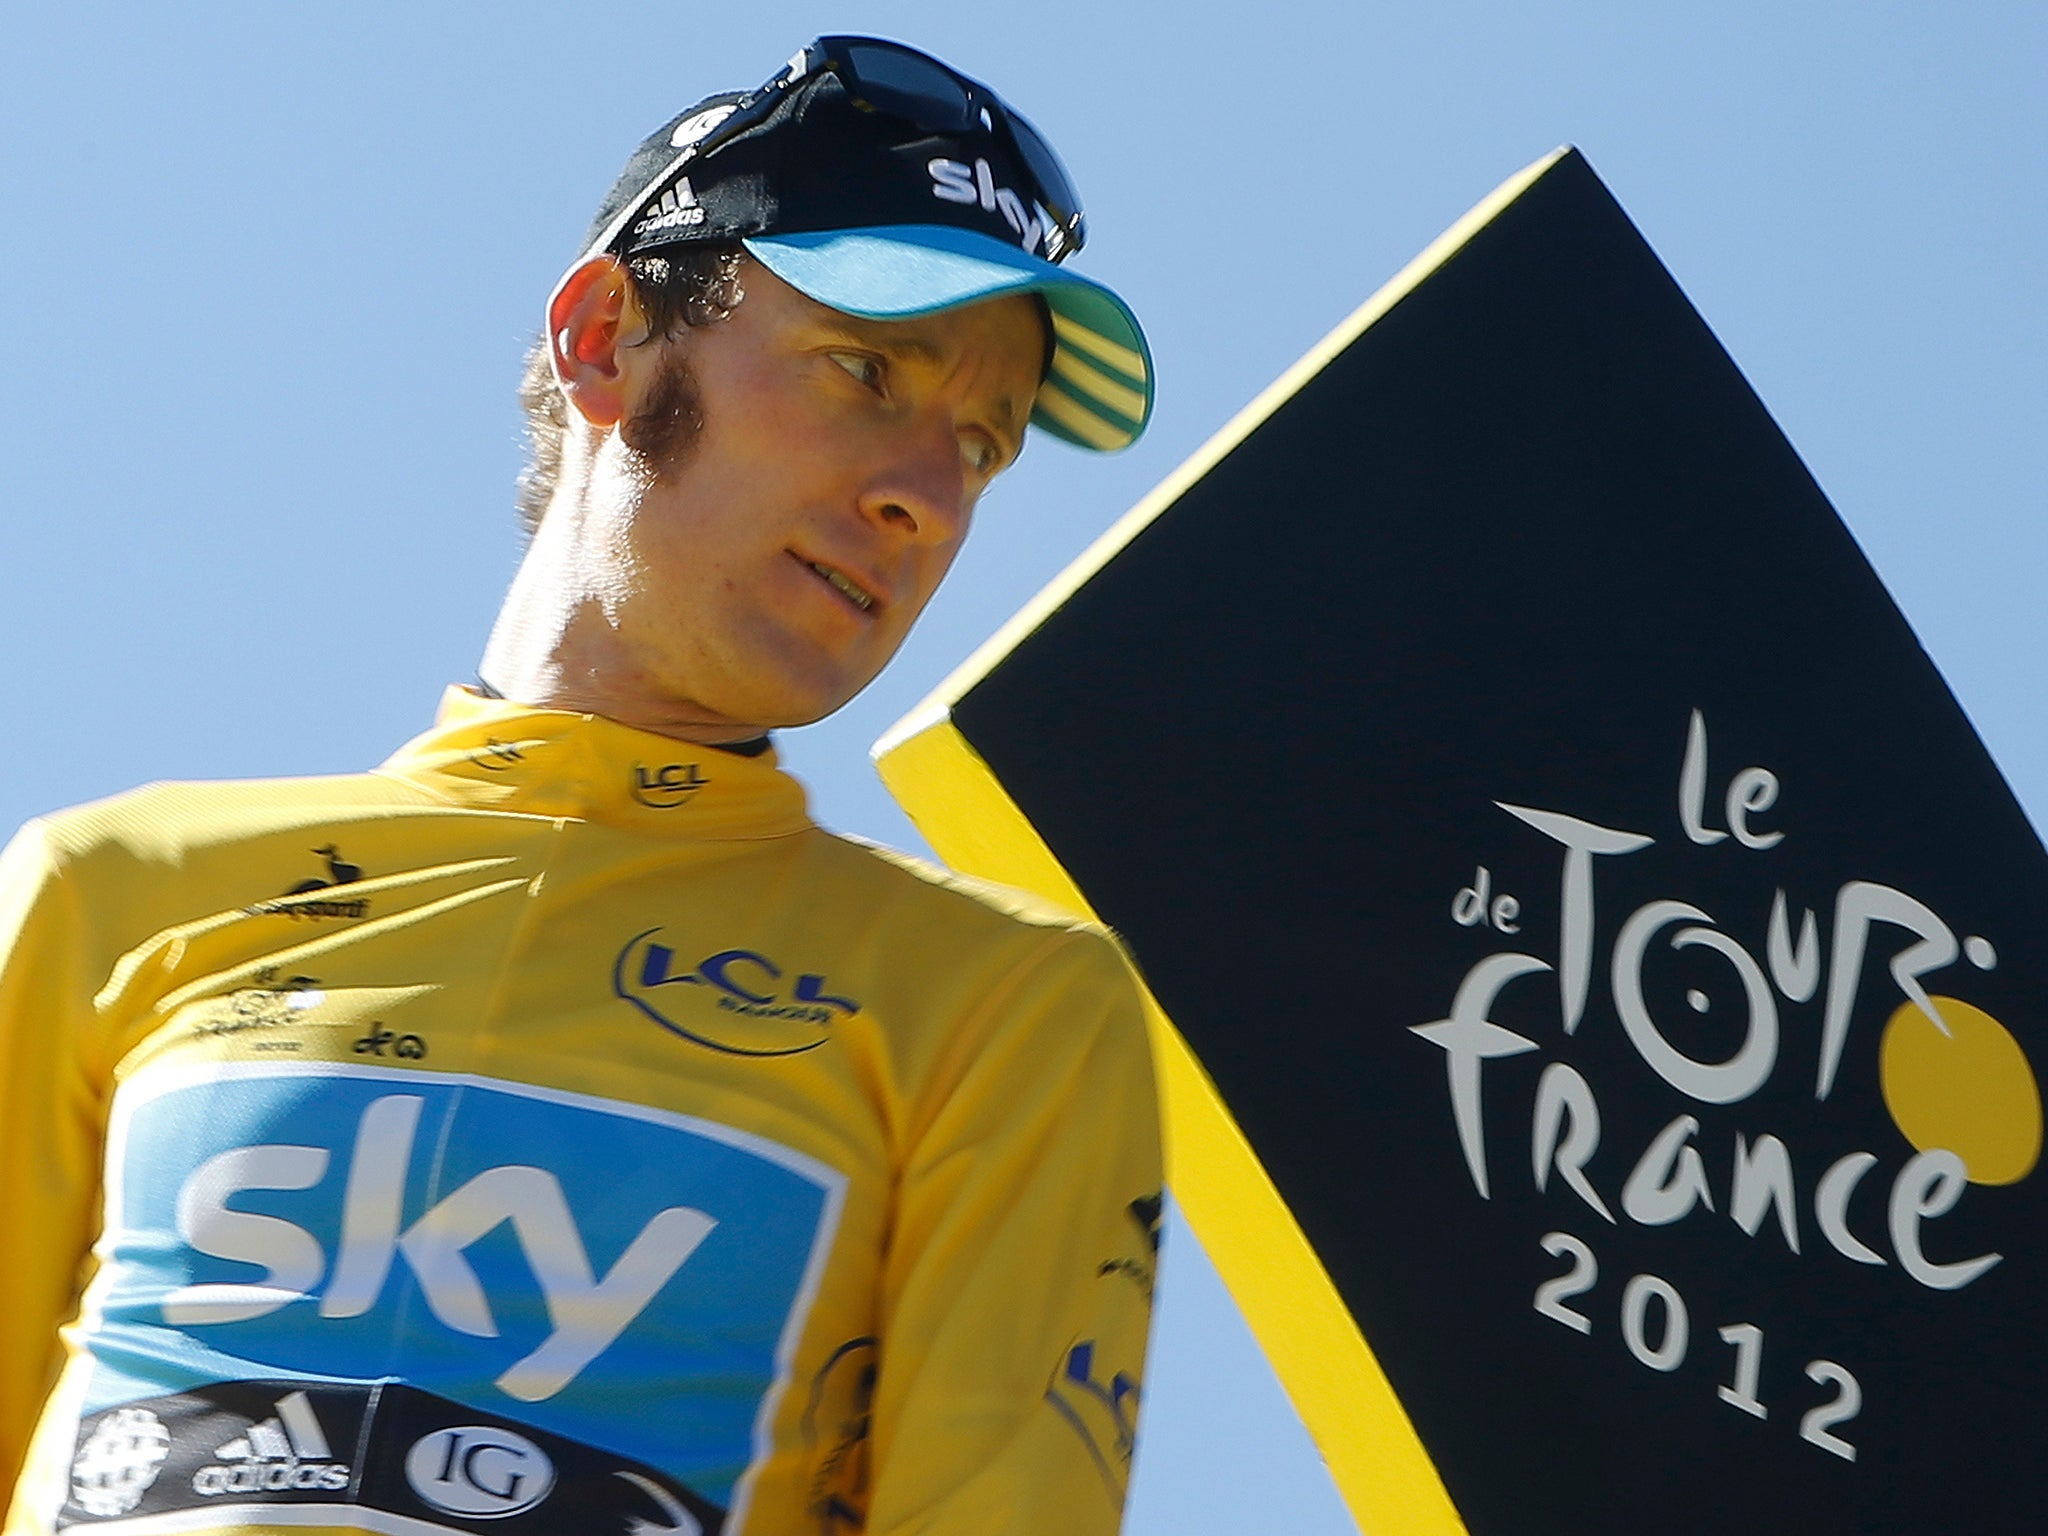 Bradley Wiggins used banned performance enhancing corticosteroid Ciclistas británicos ...